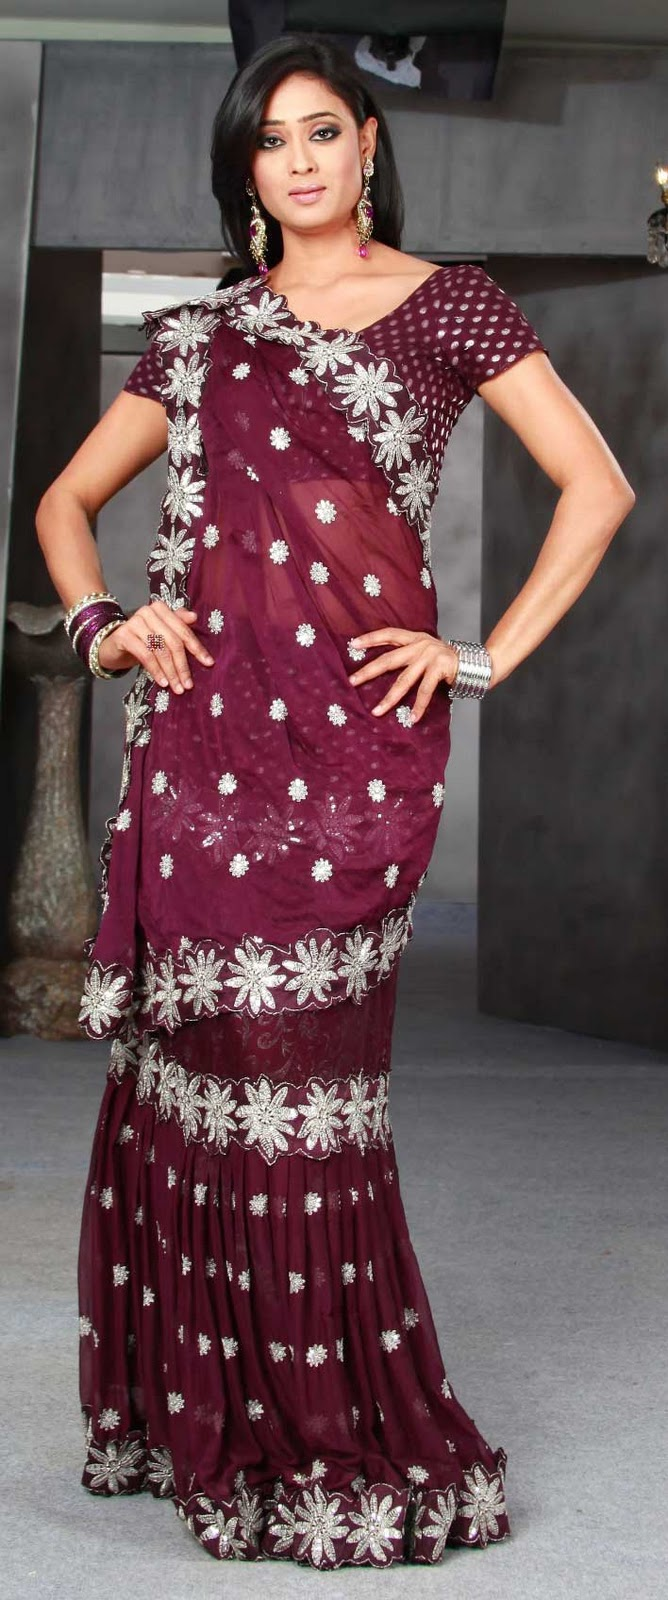 Kalazone now has the cheapest saree of just Rs.77/-.